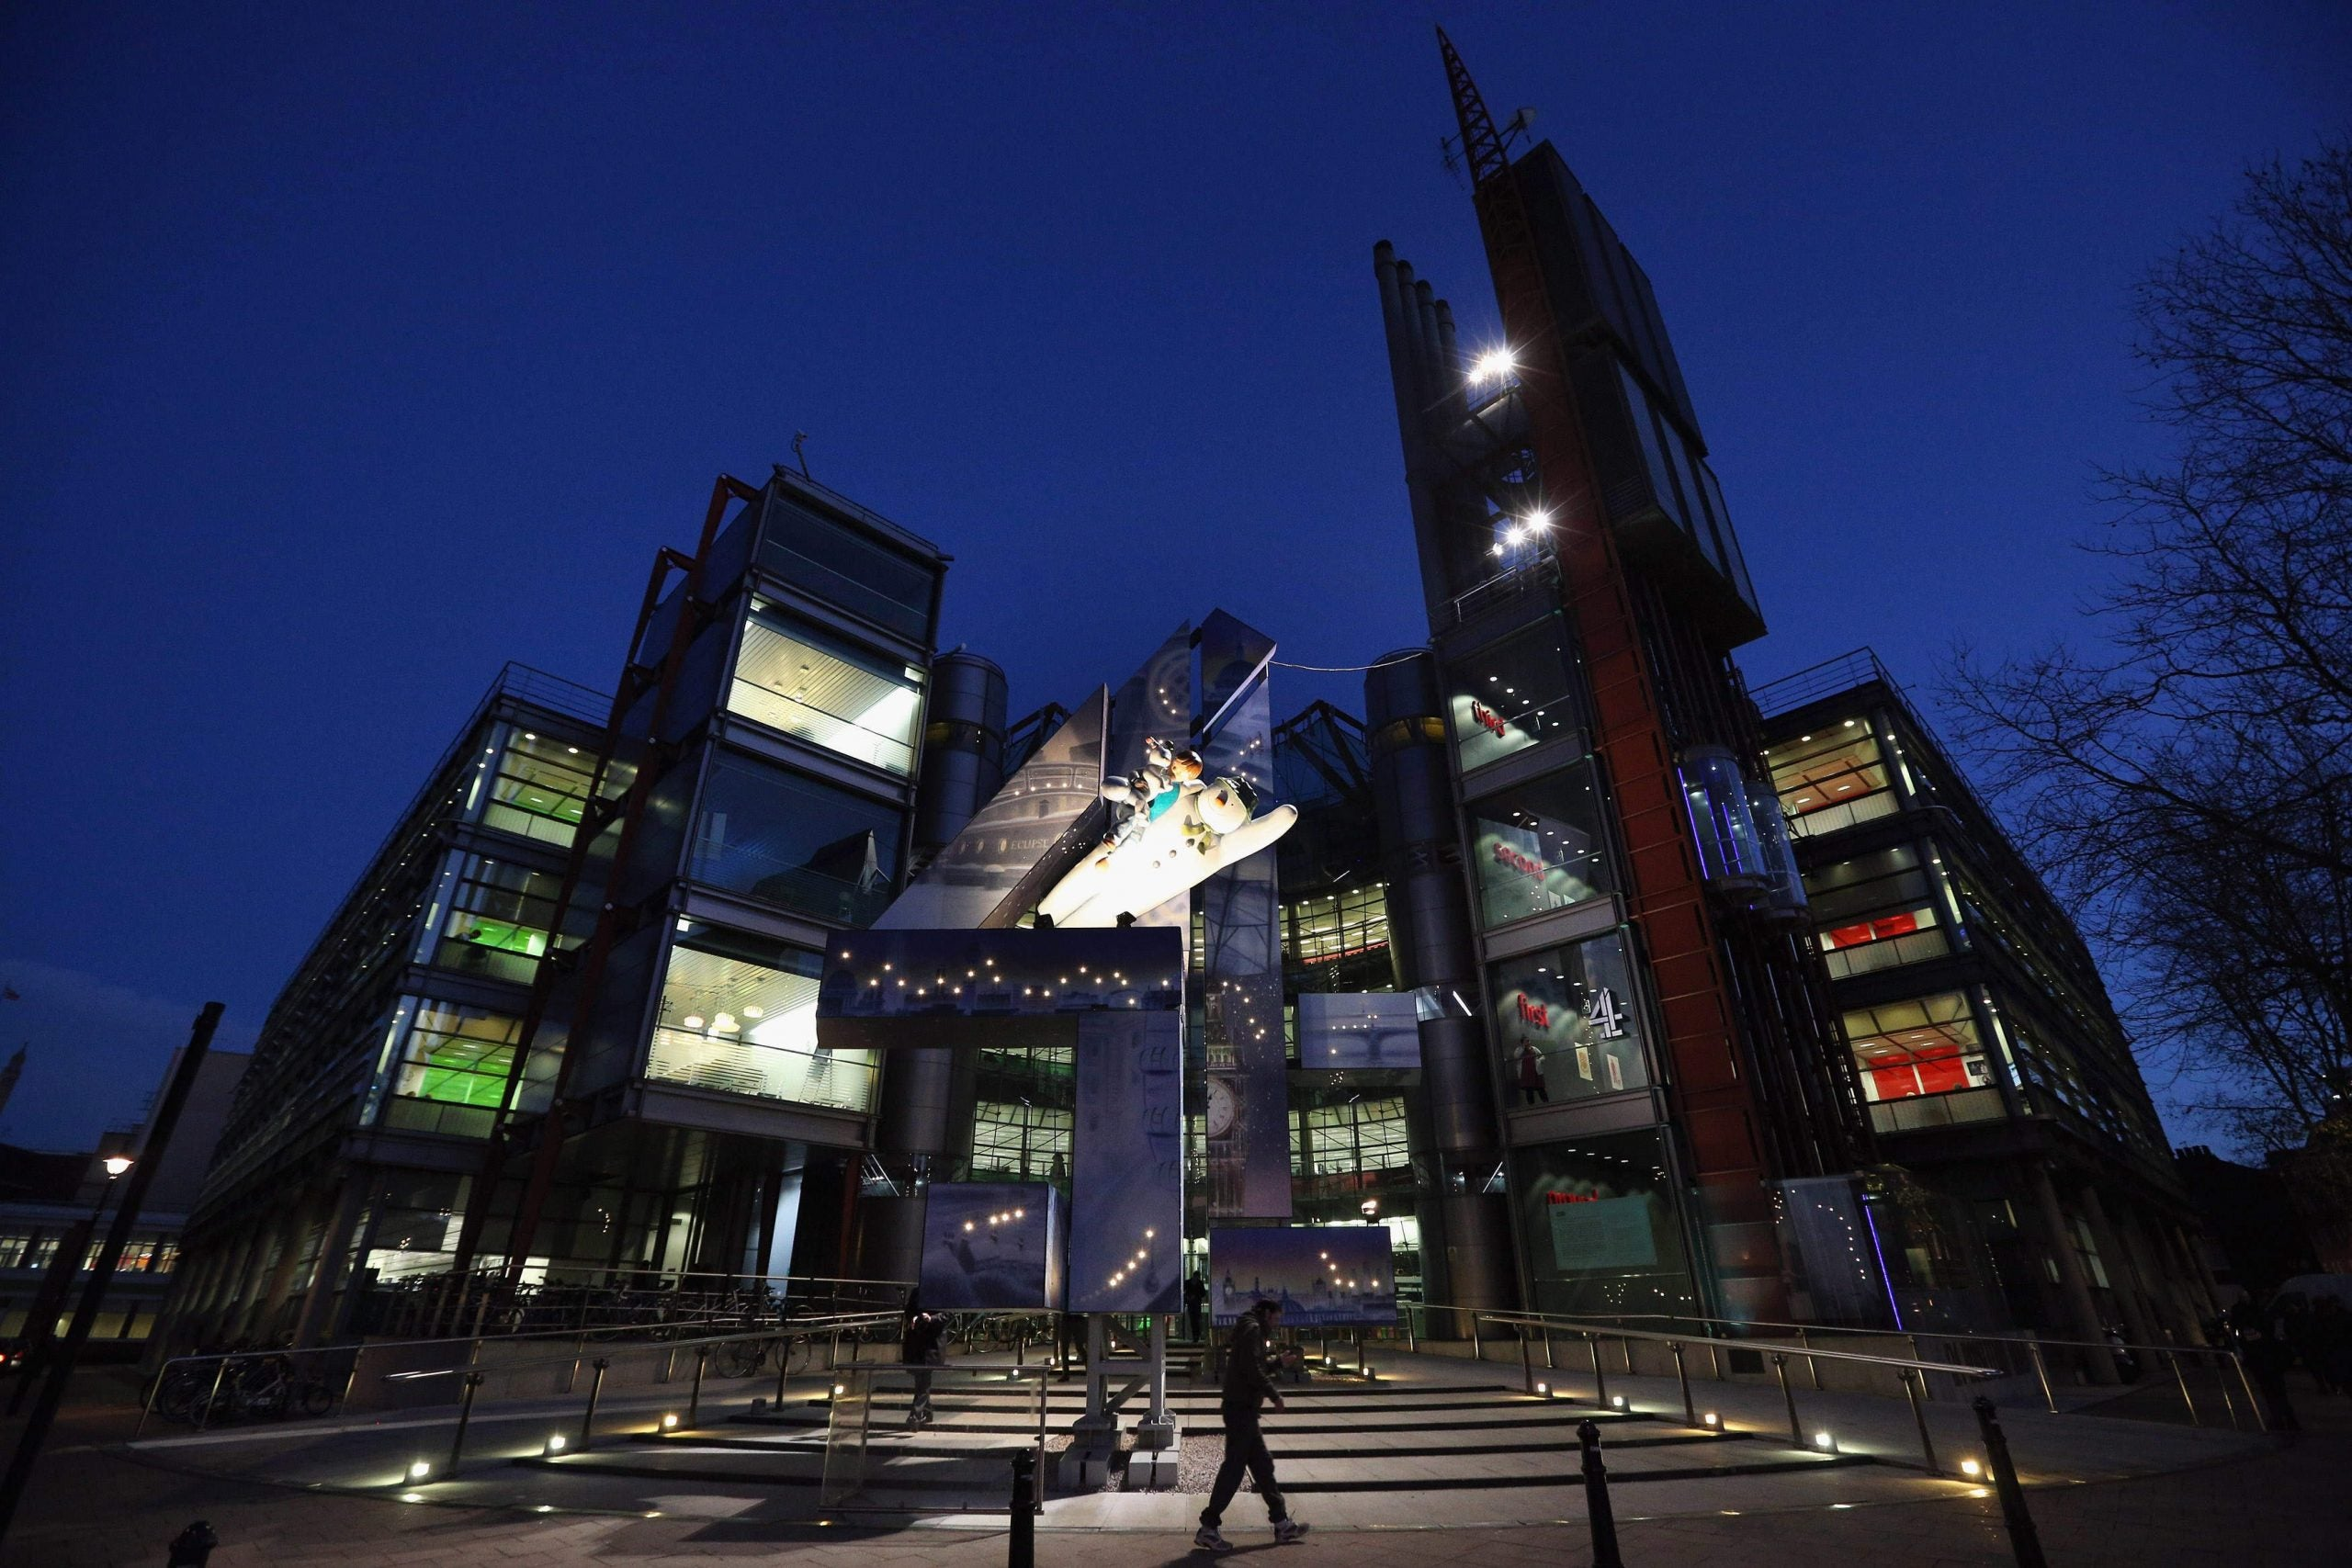 If Channel 4 is sold off, we'll all be poorer for it